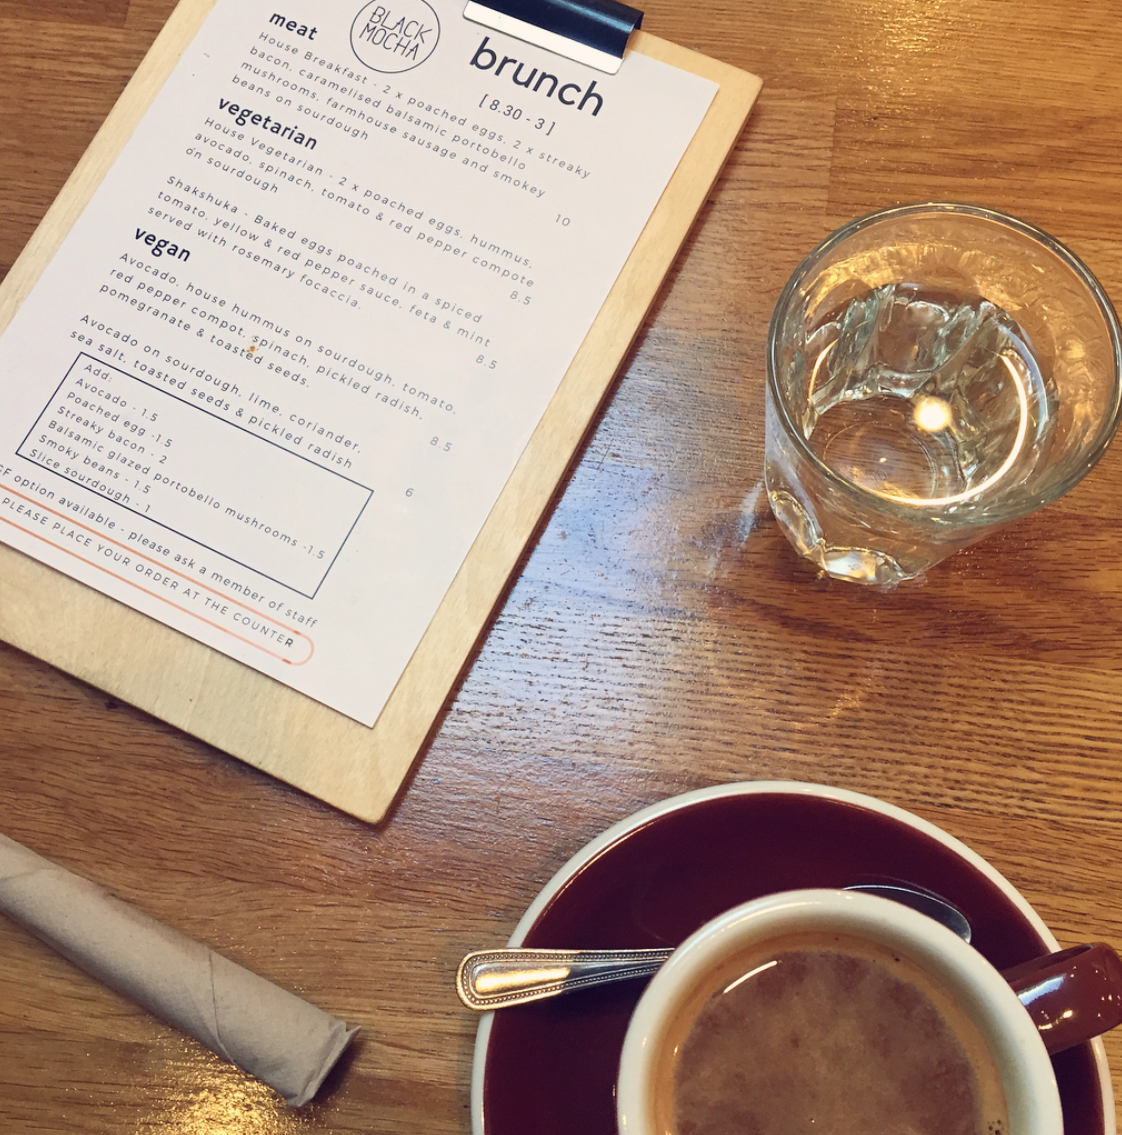 tabletop view at black mocha brighton, including their famous 'black mocha' beverage, a glass of water and the menu